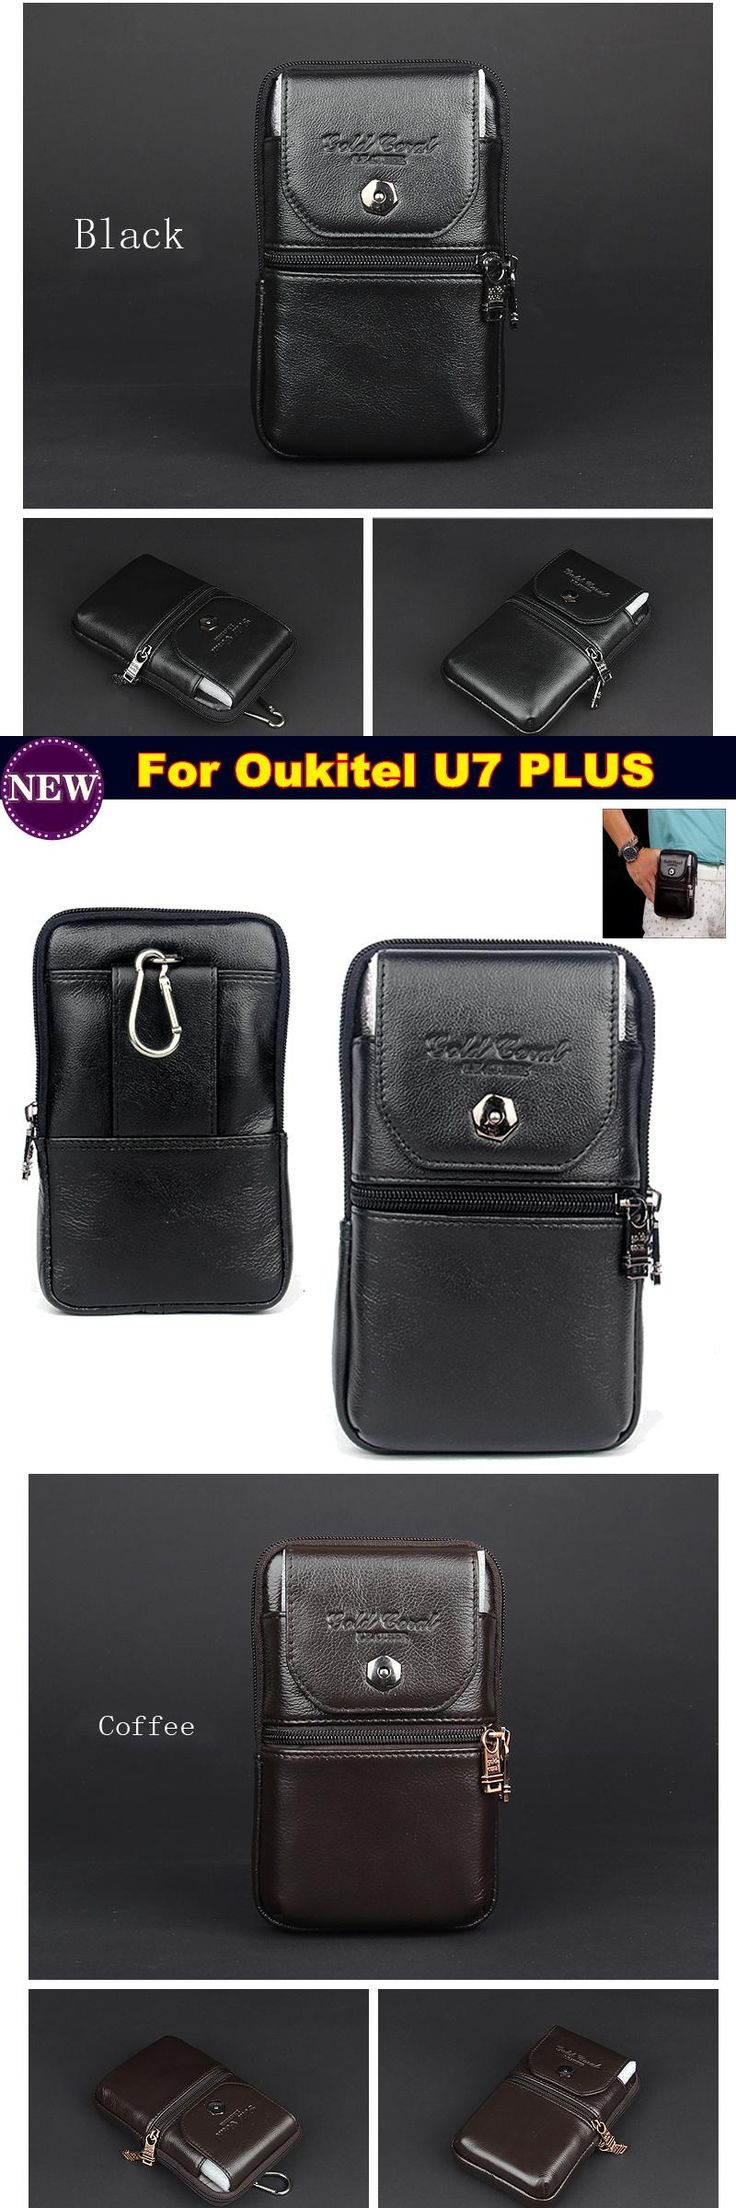 waterproof phone case / Leather Carry Belt Clip Pouch Waist Purse Case Cover for Oukitel U7 PLUS pouch phone case